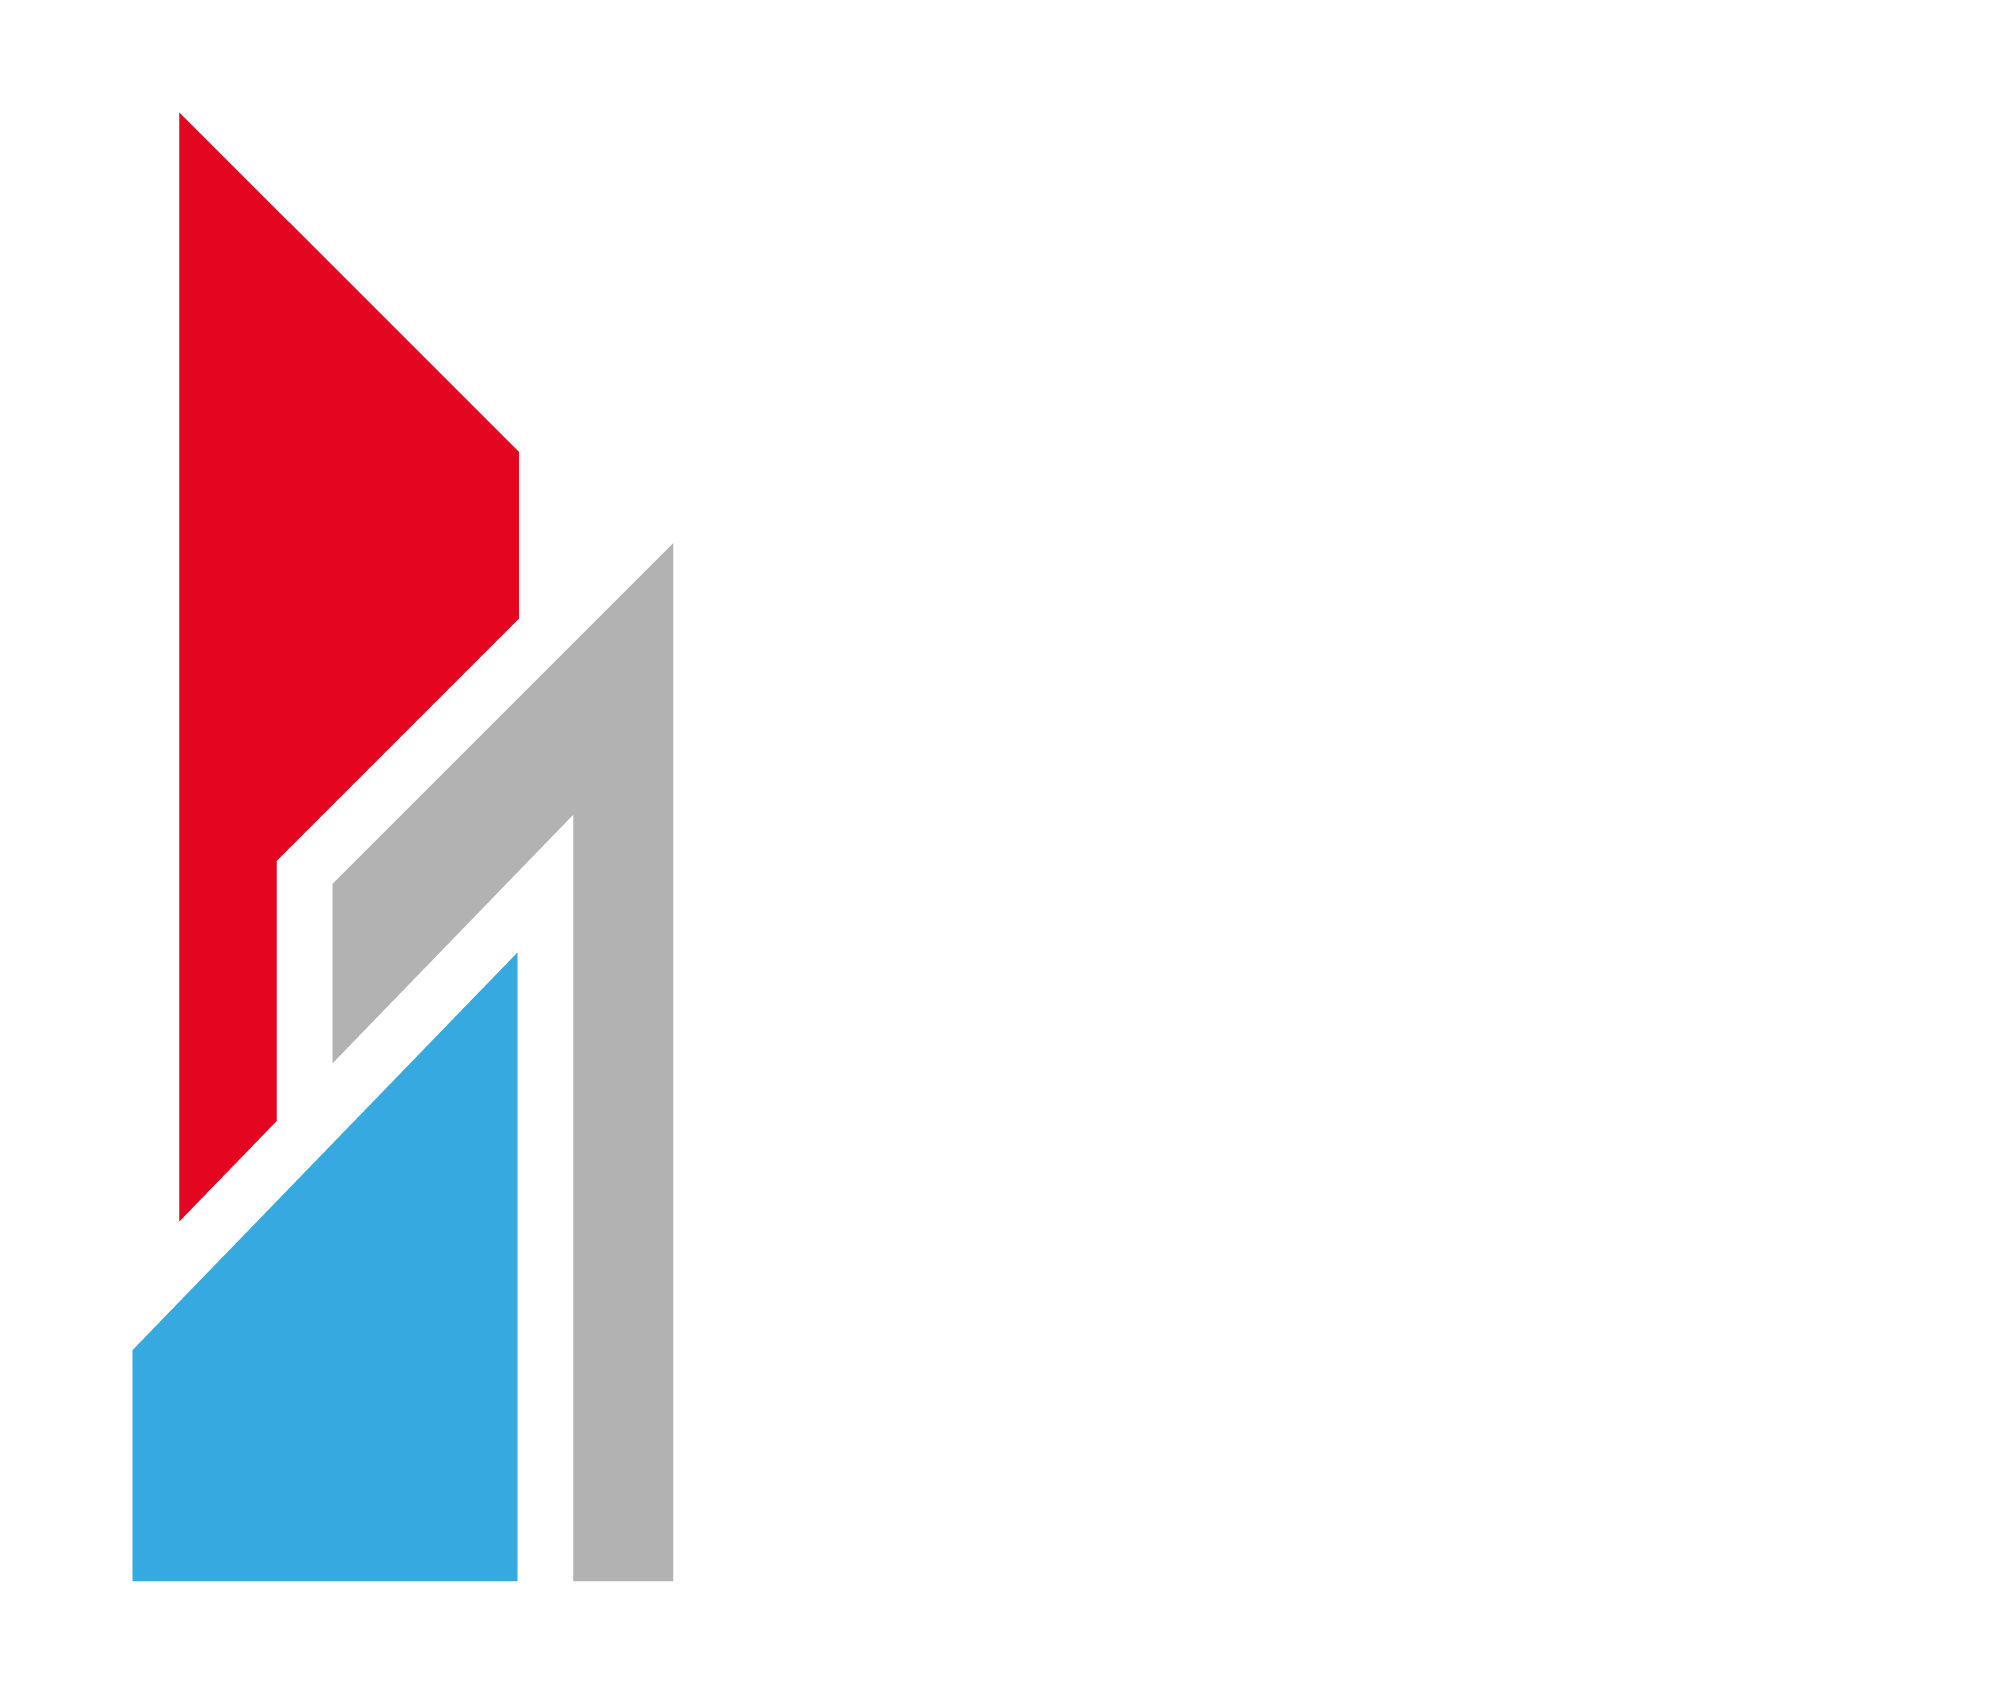 FLYERALARM Design Award 2020